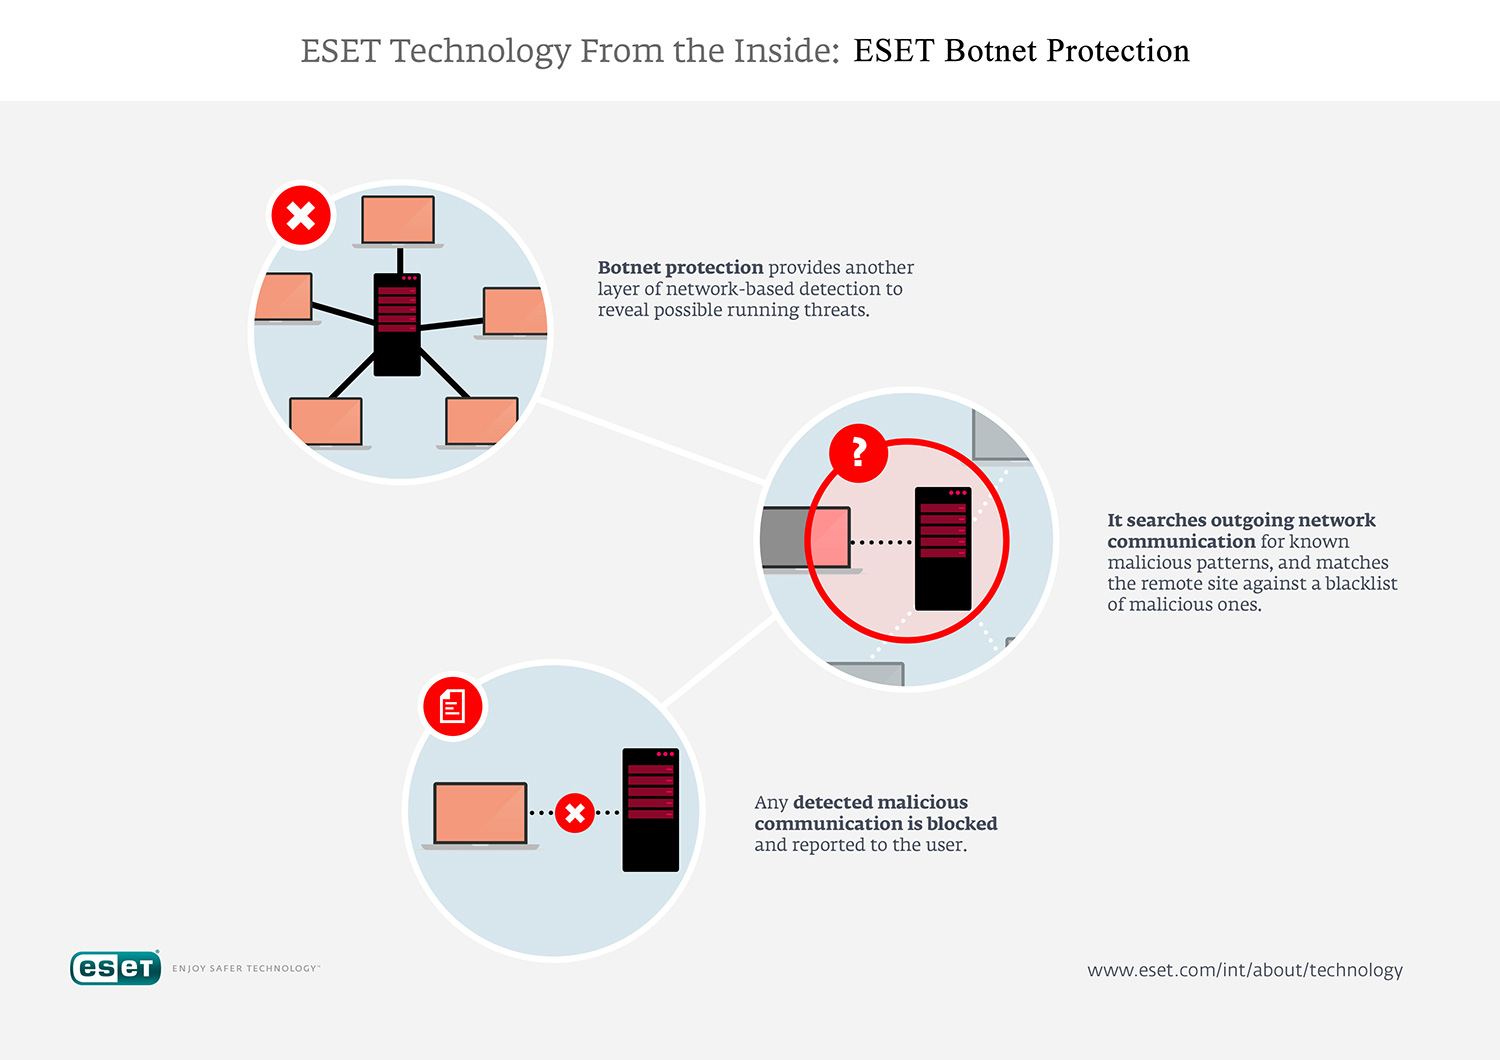 Eset Technology Continually Developing Leading Edge